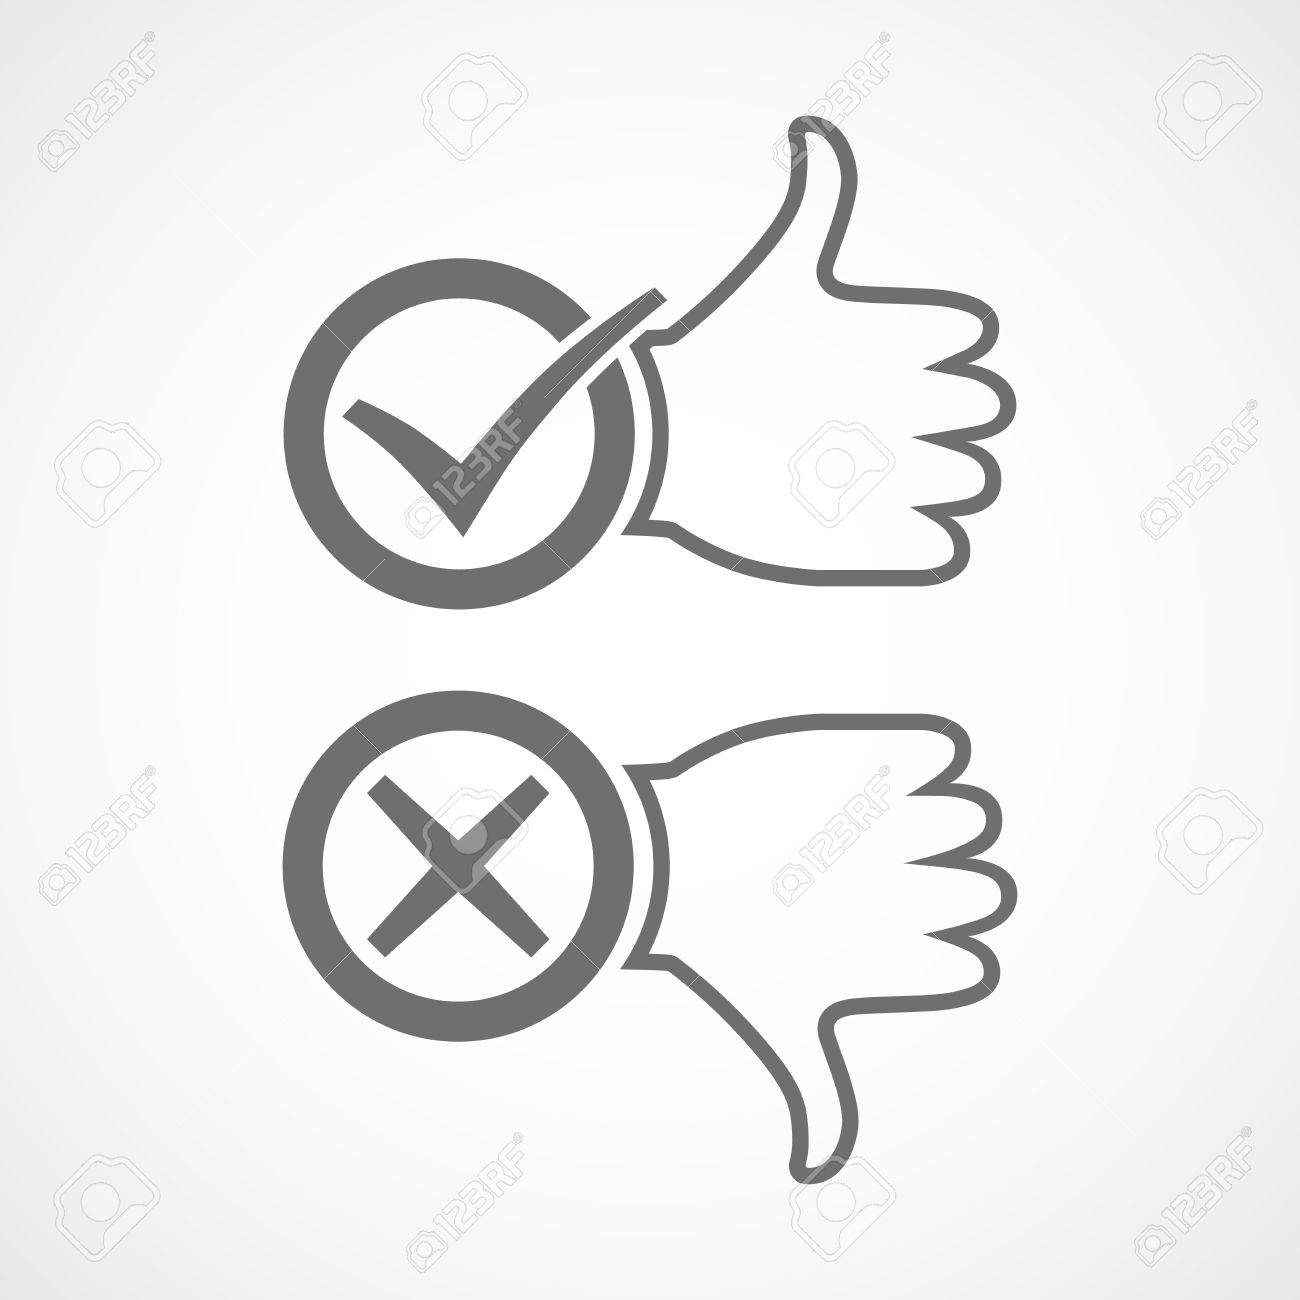 Thumb up icon with check mark  Thumb down with cross mark  Vector